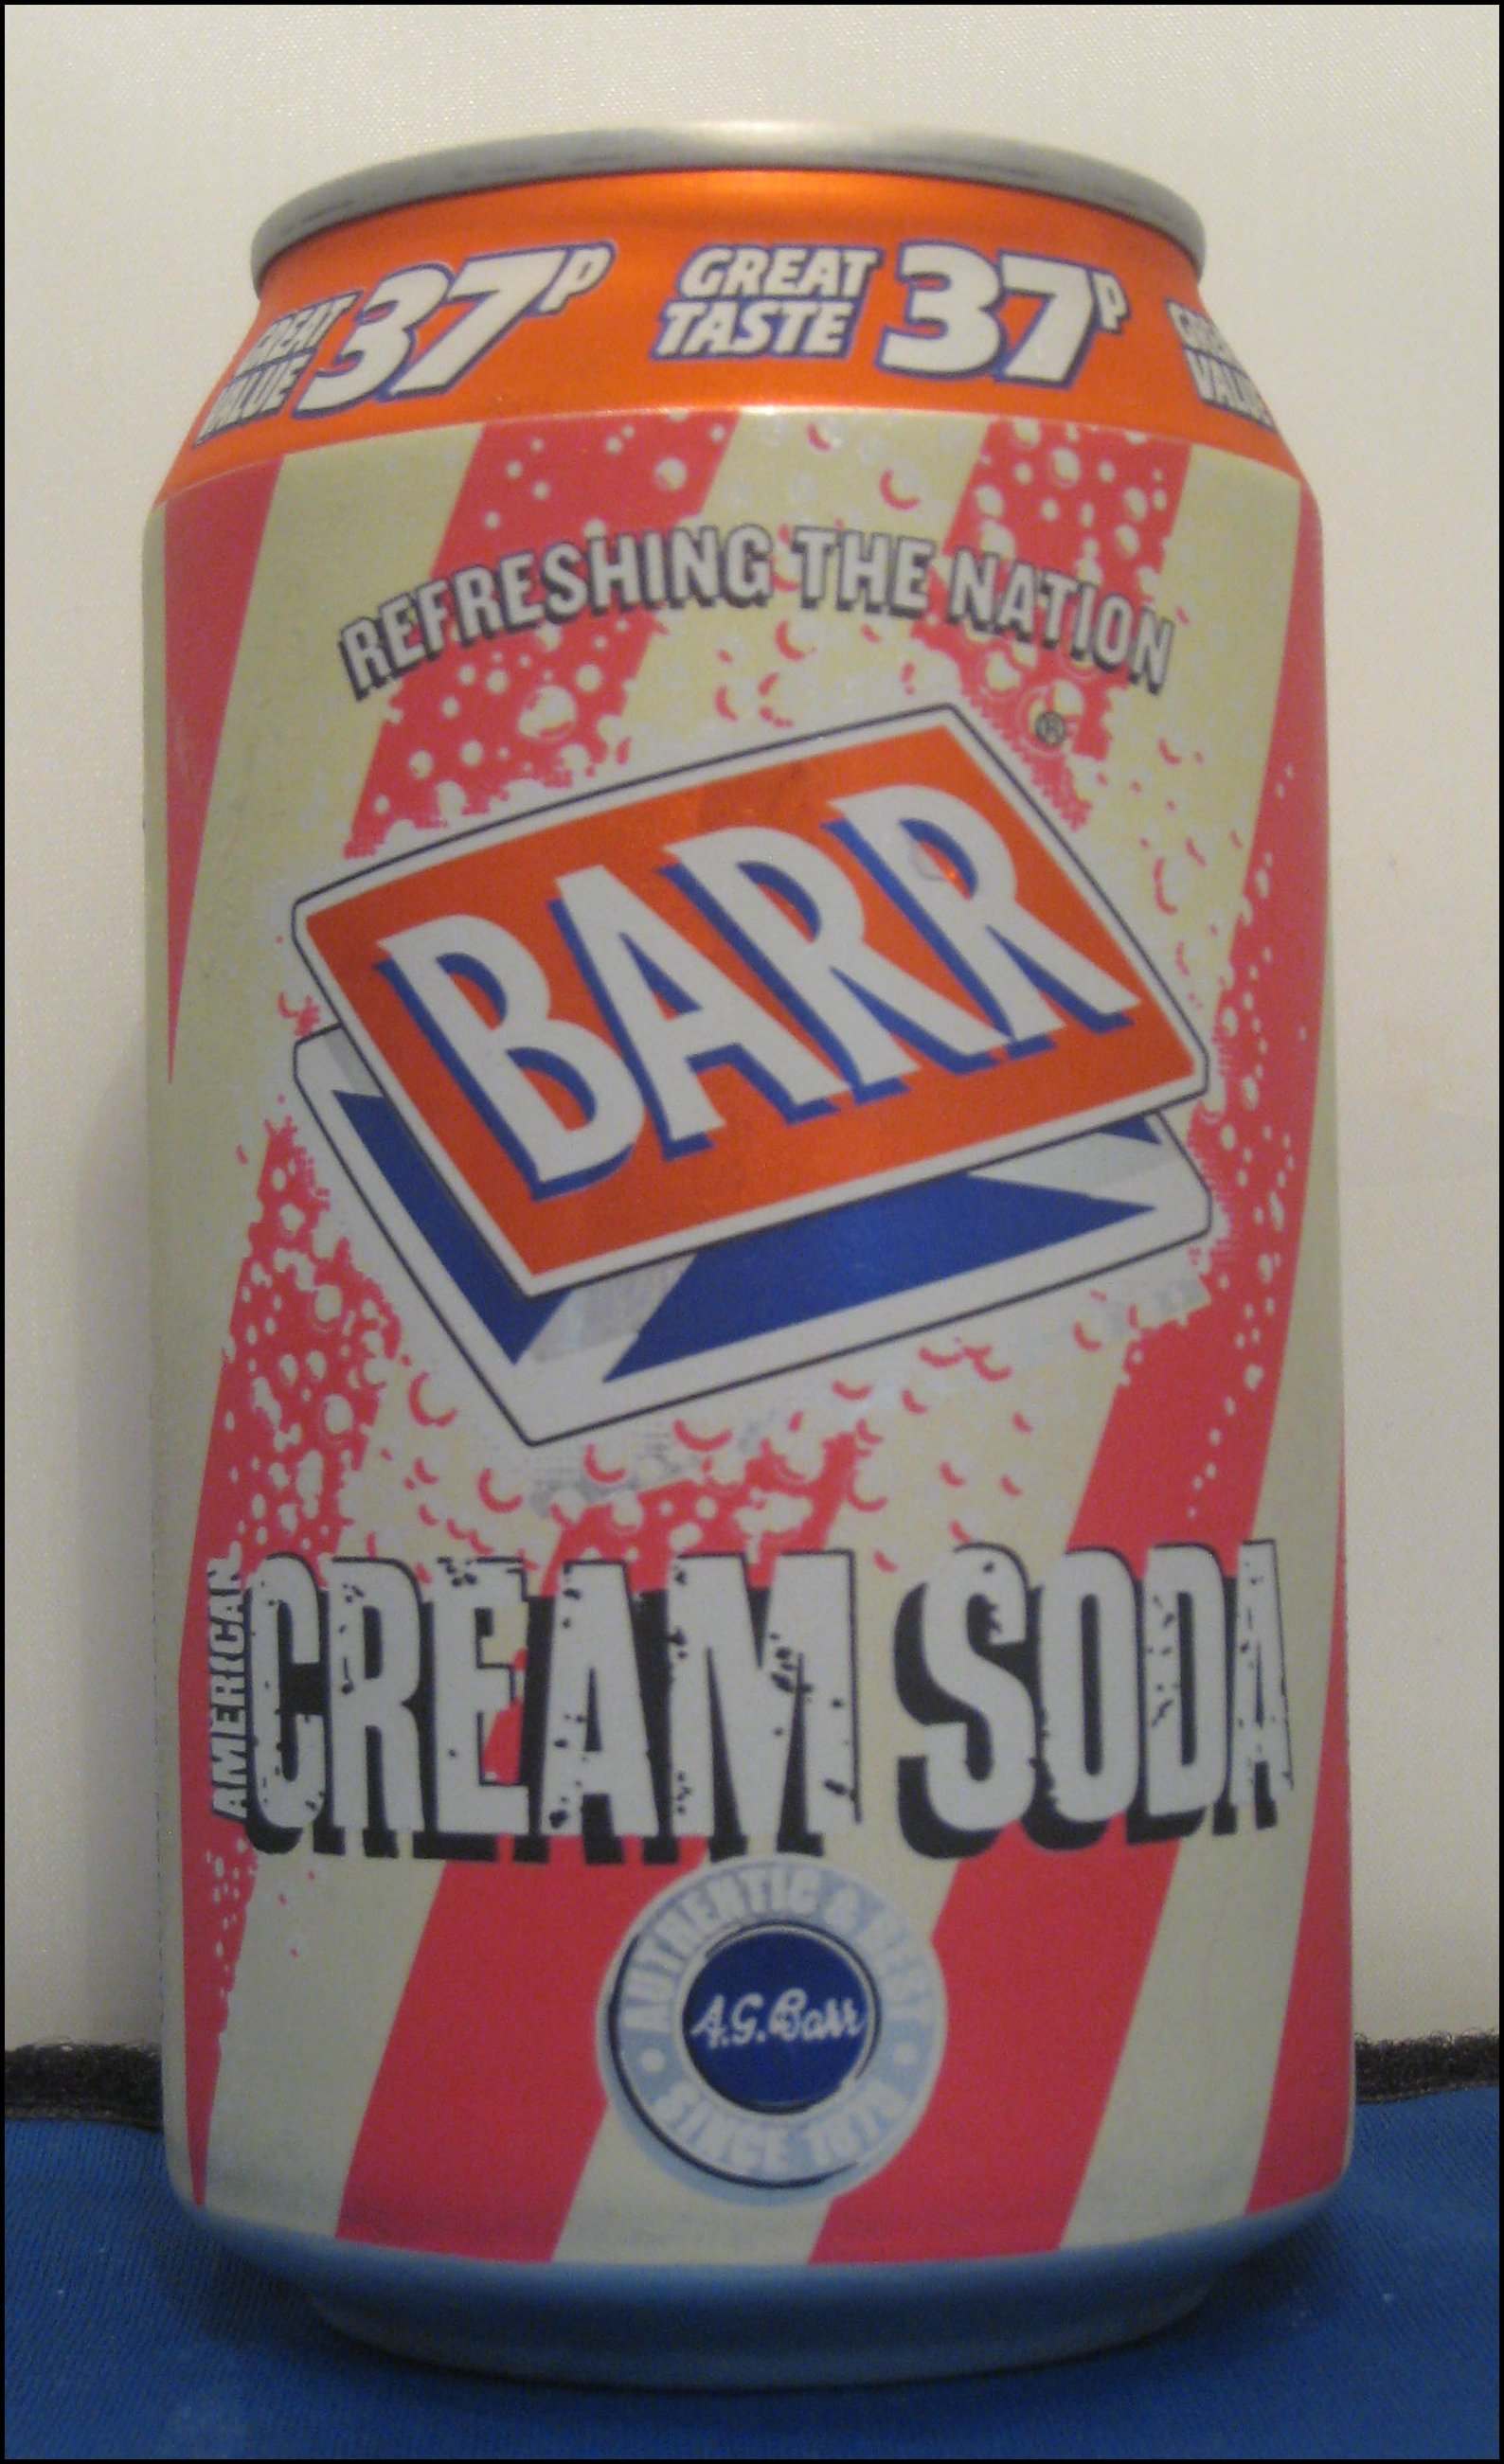 Robust Image Result American Cream Soda Uk Fizzy Drinks That You Might Remember From Your Childhood Bring Back Hubba Bubba Soda Hubba Bubba Soda Wiki nice food Hubba Bubba Soda